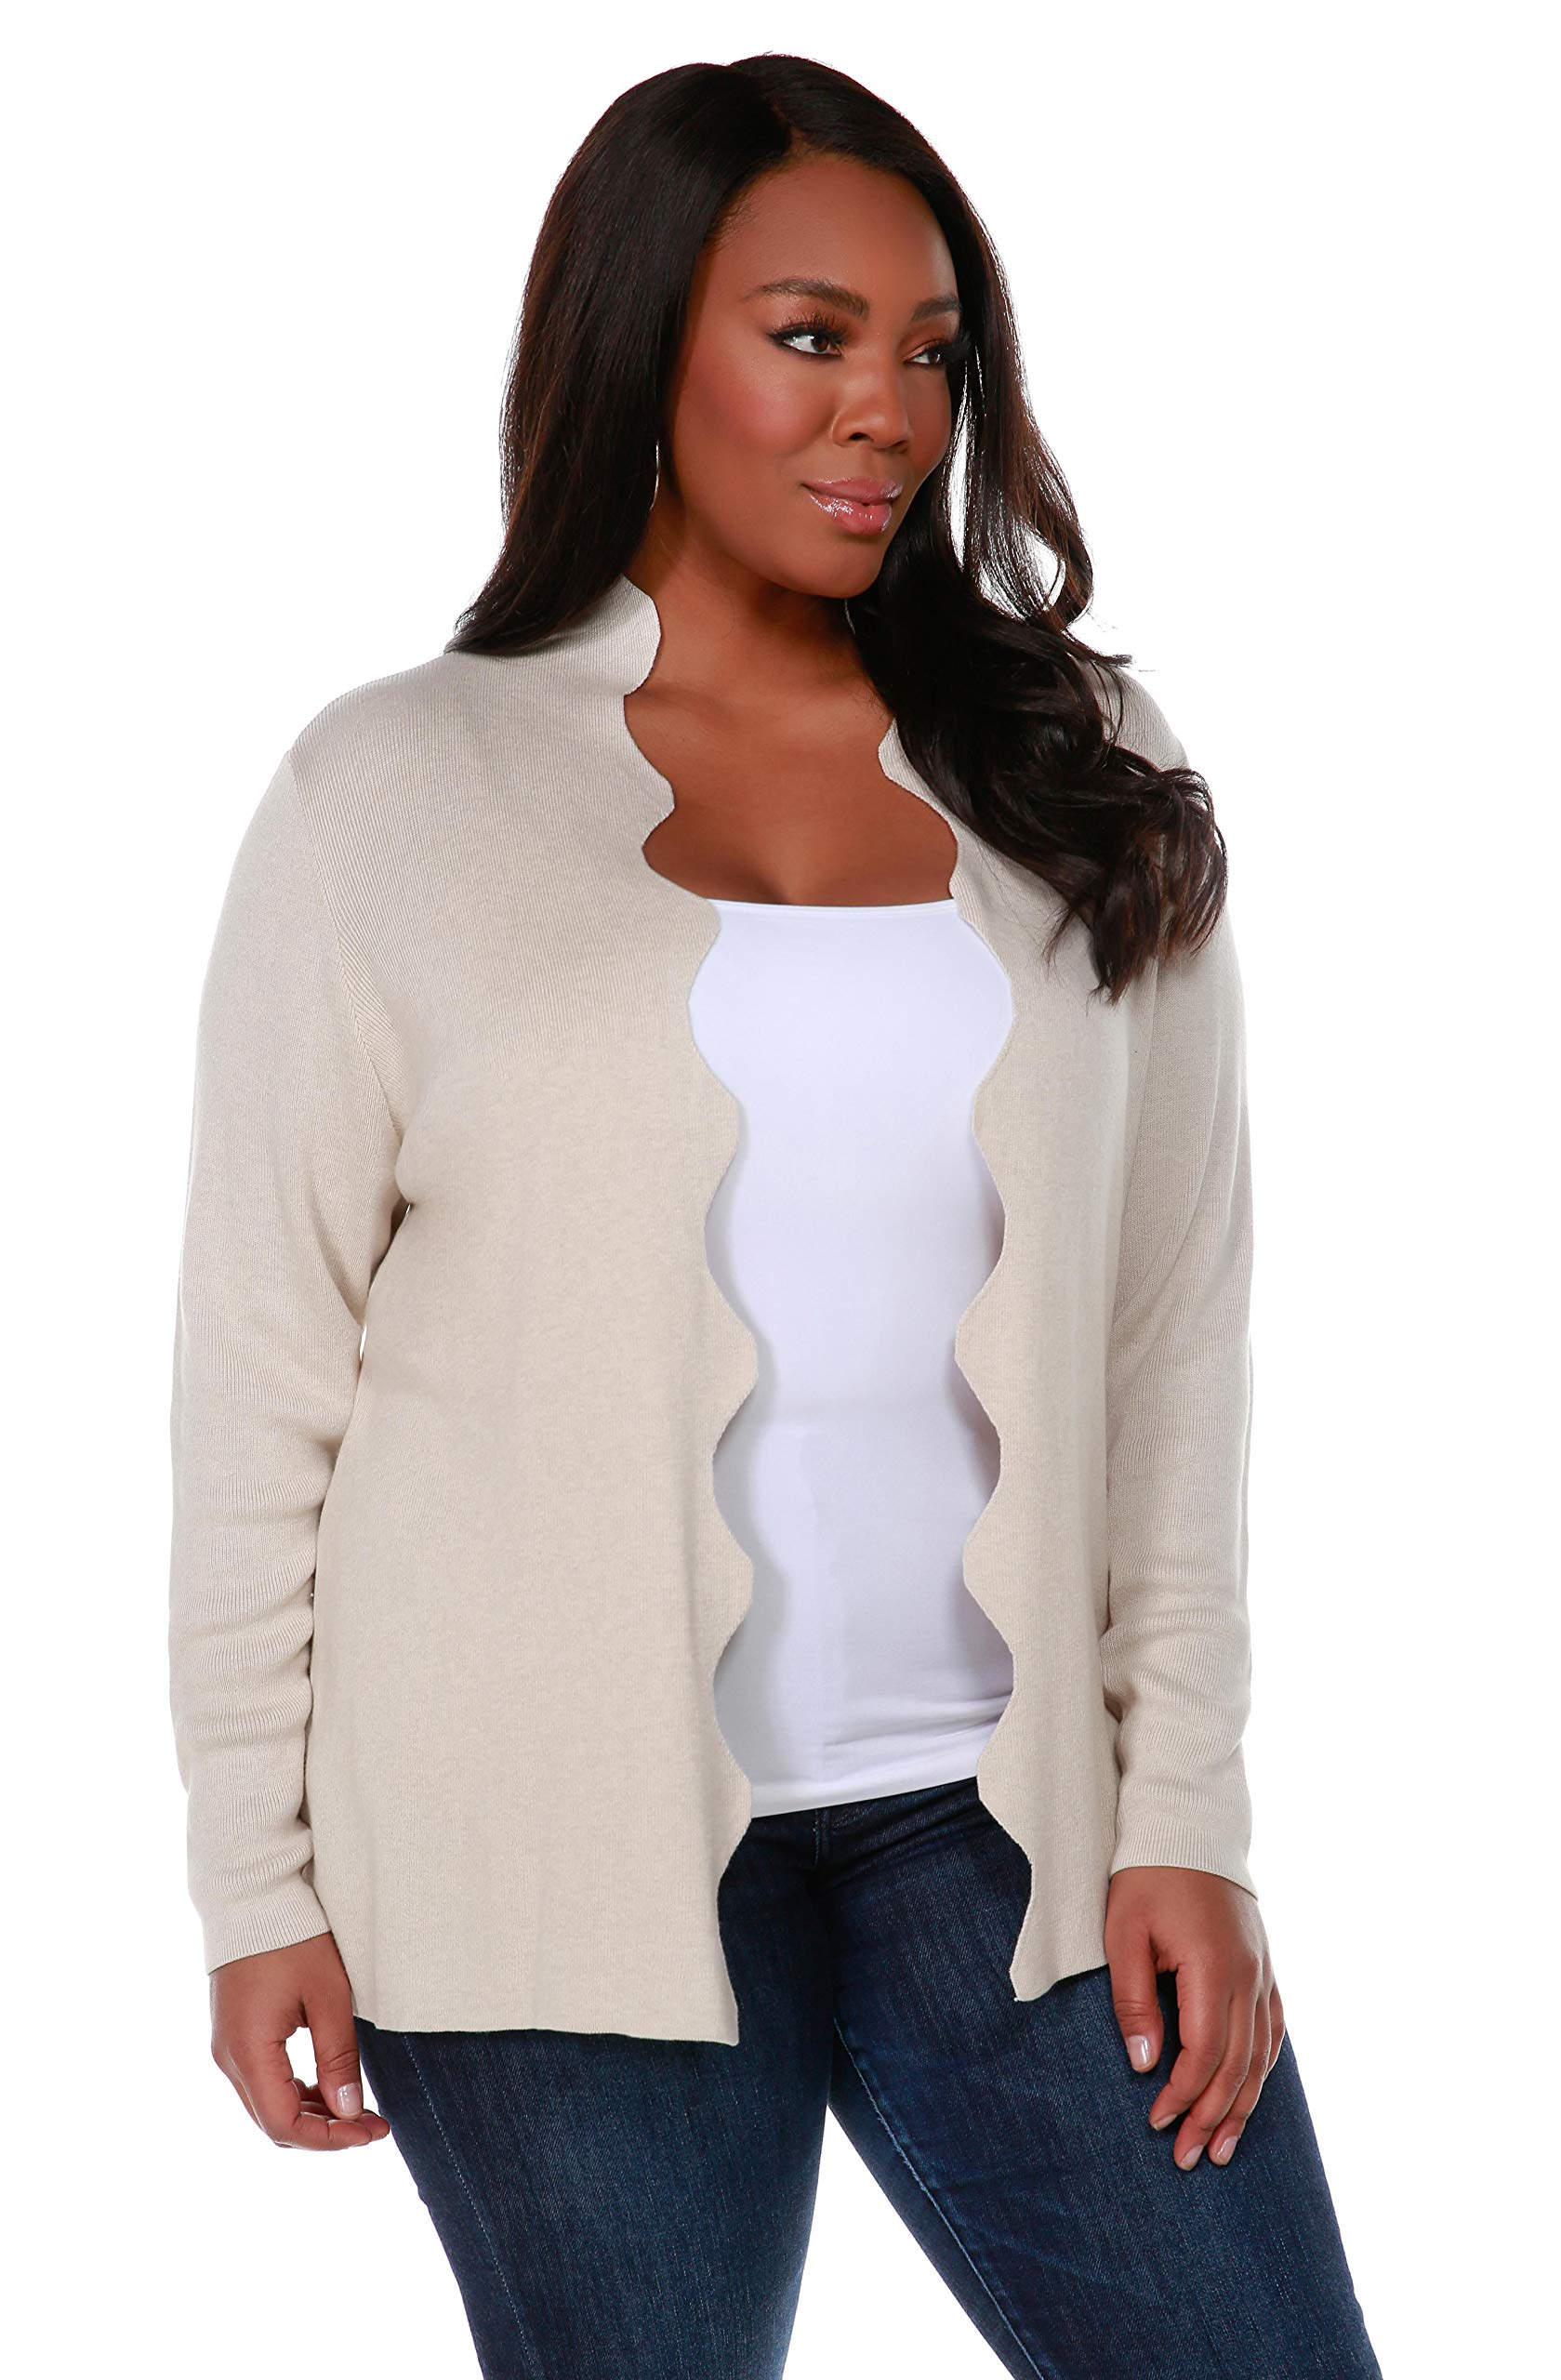 Belldini Women's Fashion, Plus Size, Long Sleeve Open Cardigan with Scallop Front